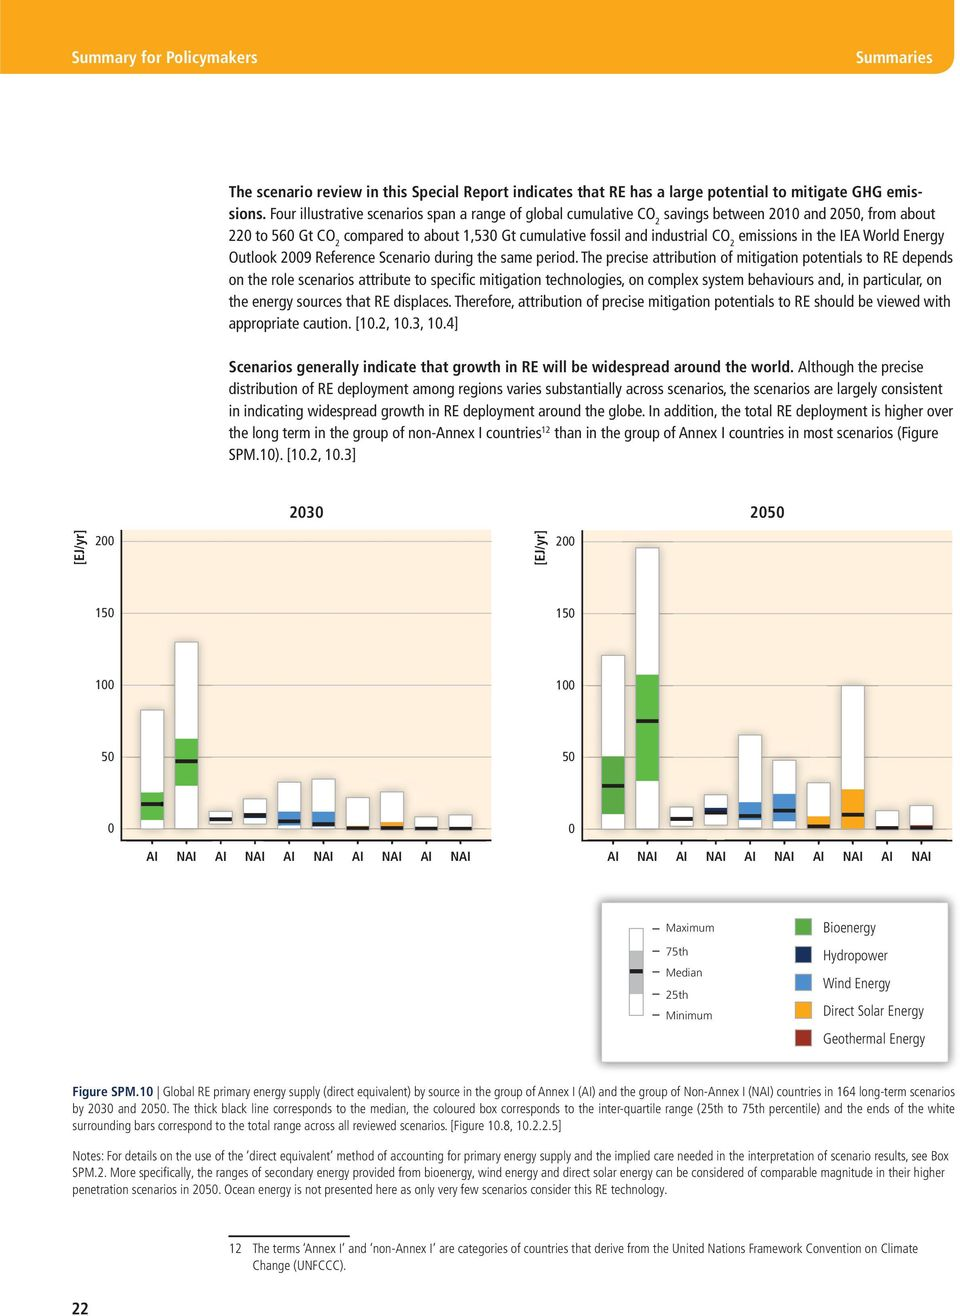 the IEA World Energy Outlook 29 Reference Scenario during the same period.